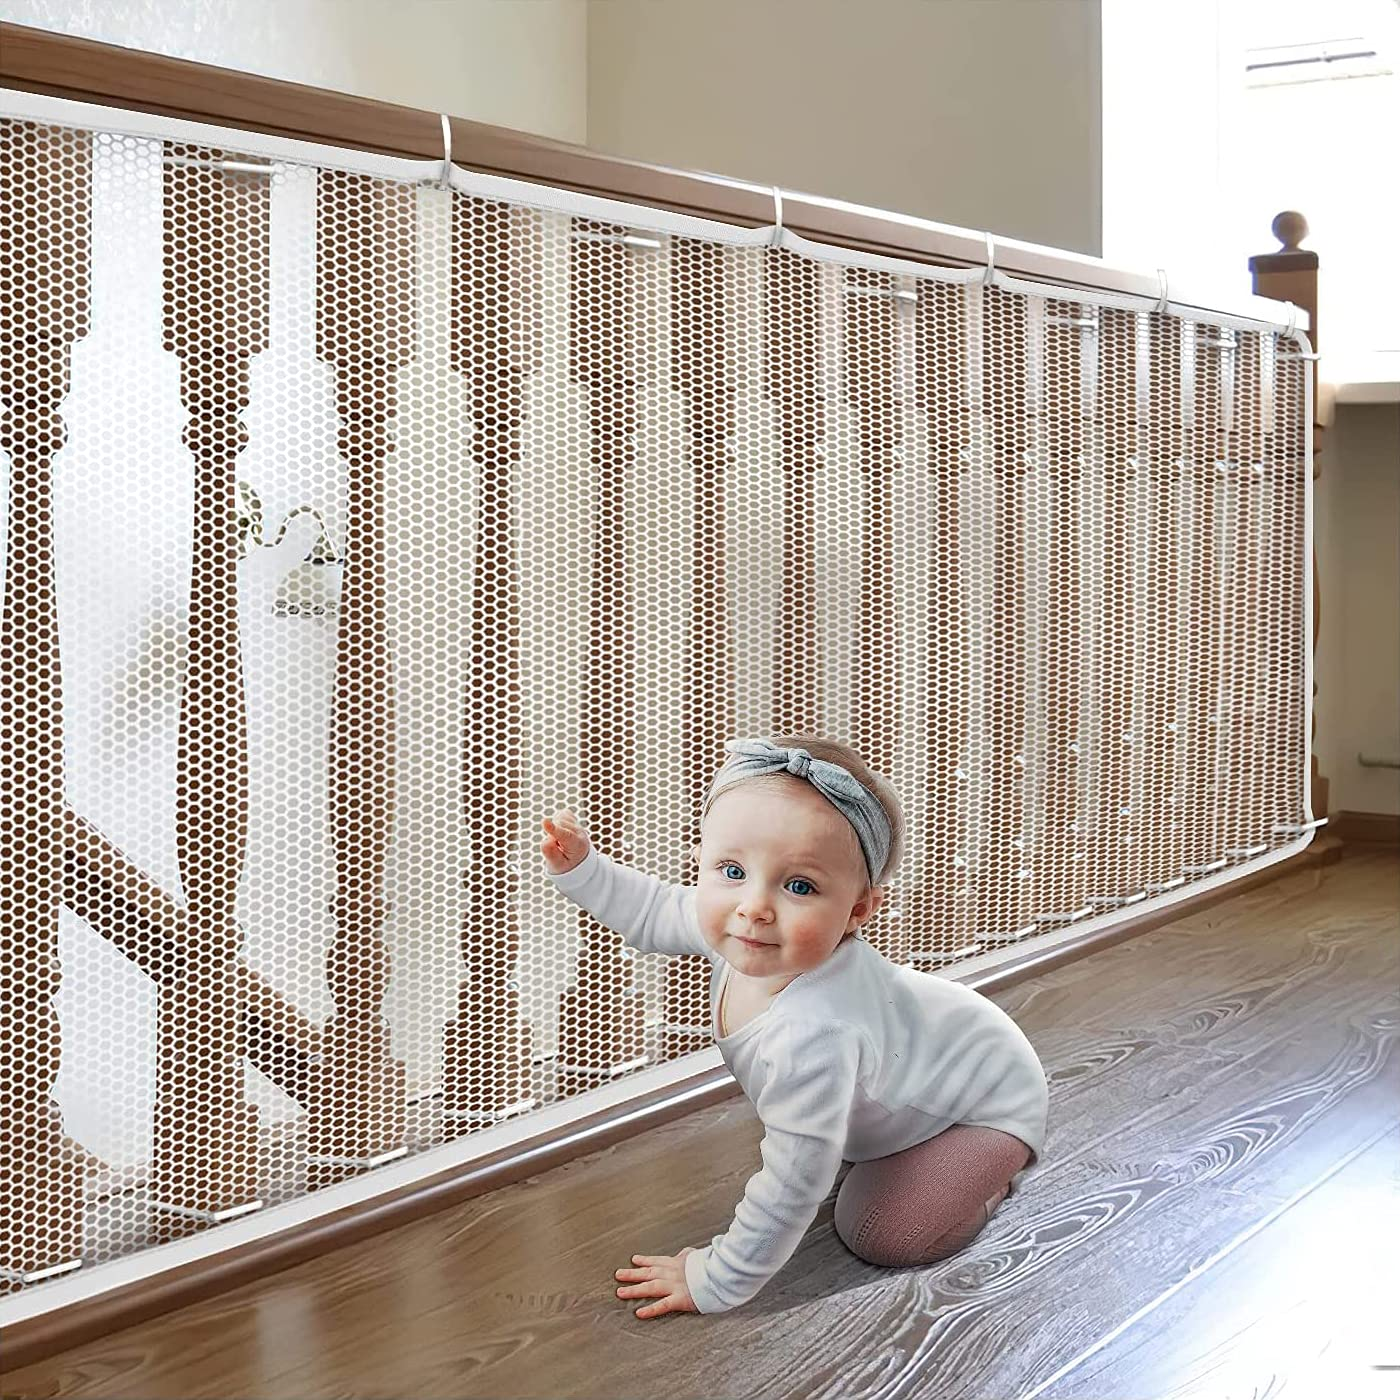 Child Safety Net,118Inchs x 29Inchs,Balcony Patios Rail Stairs Safe Net for Kids/Pets/Toys, Safety for Indoor&Outdoor